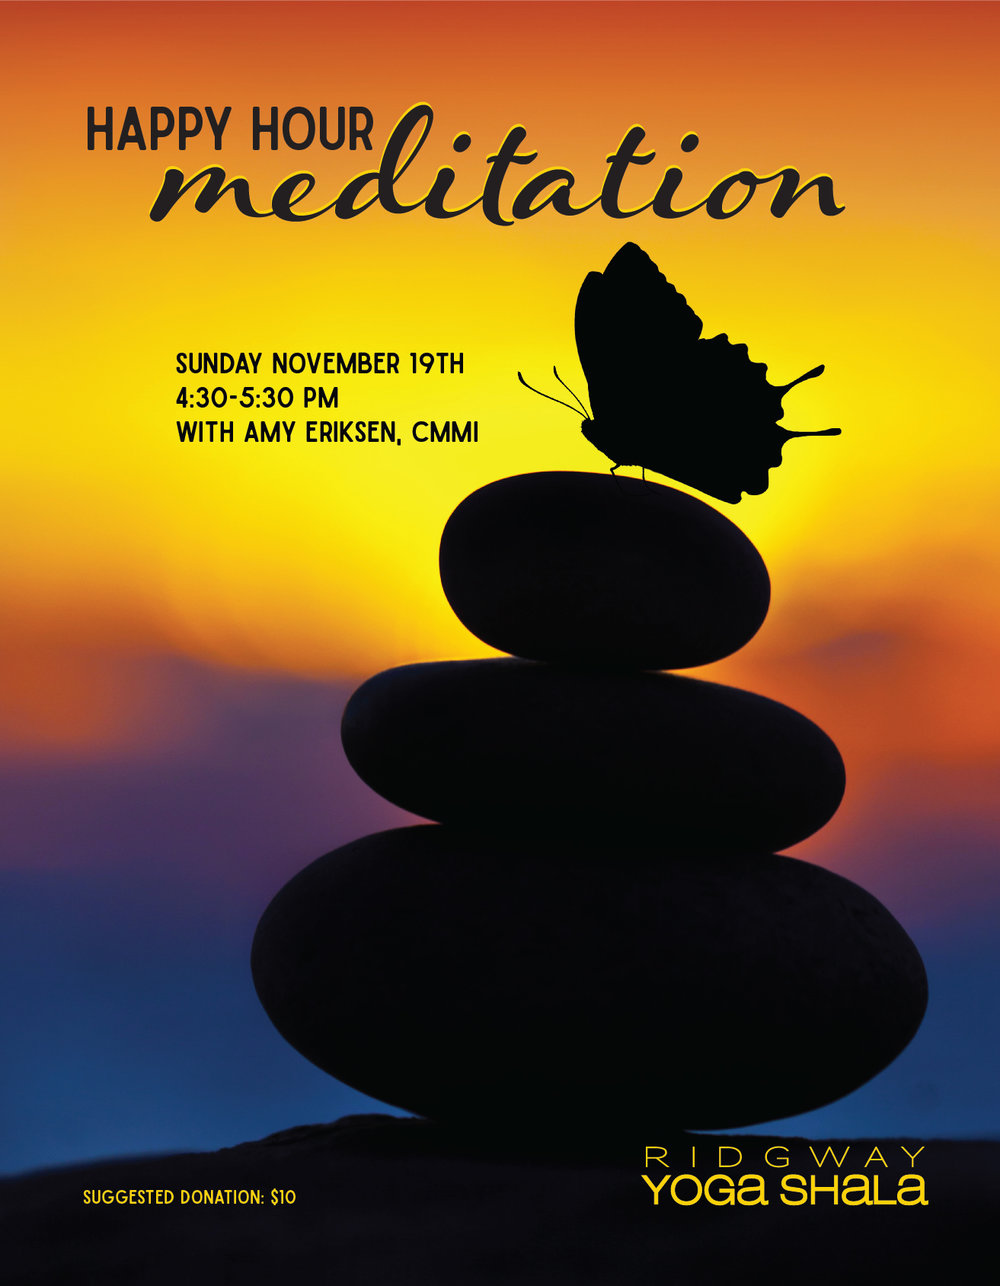 happy-hour-meditation-flyer.11-19-01.jpg